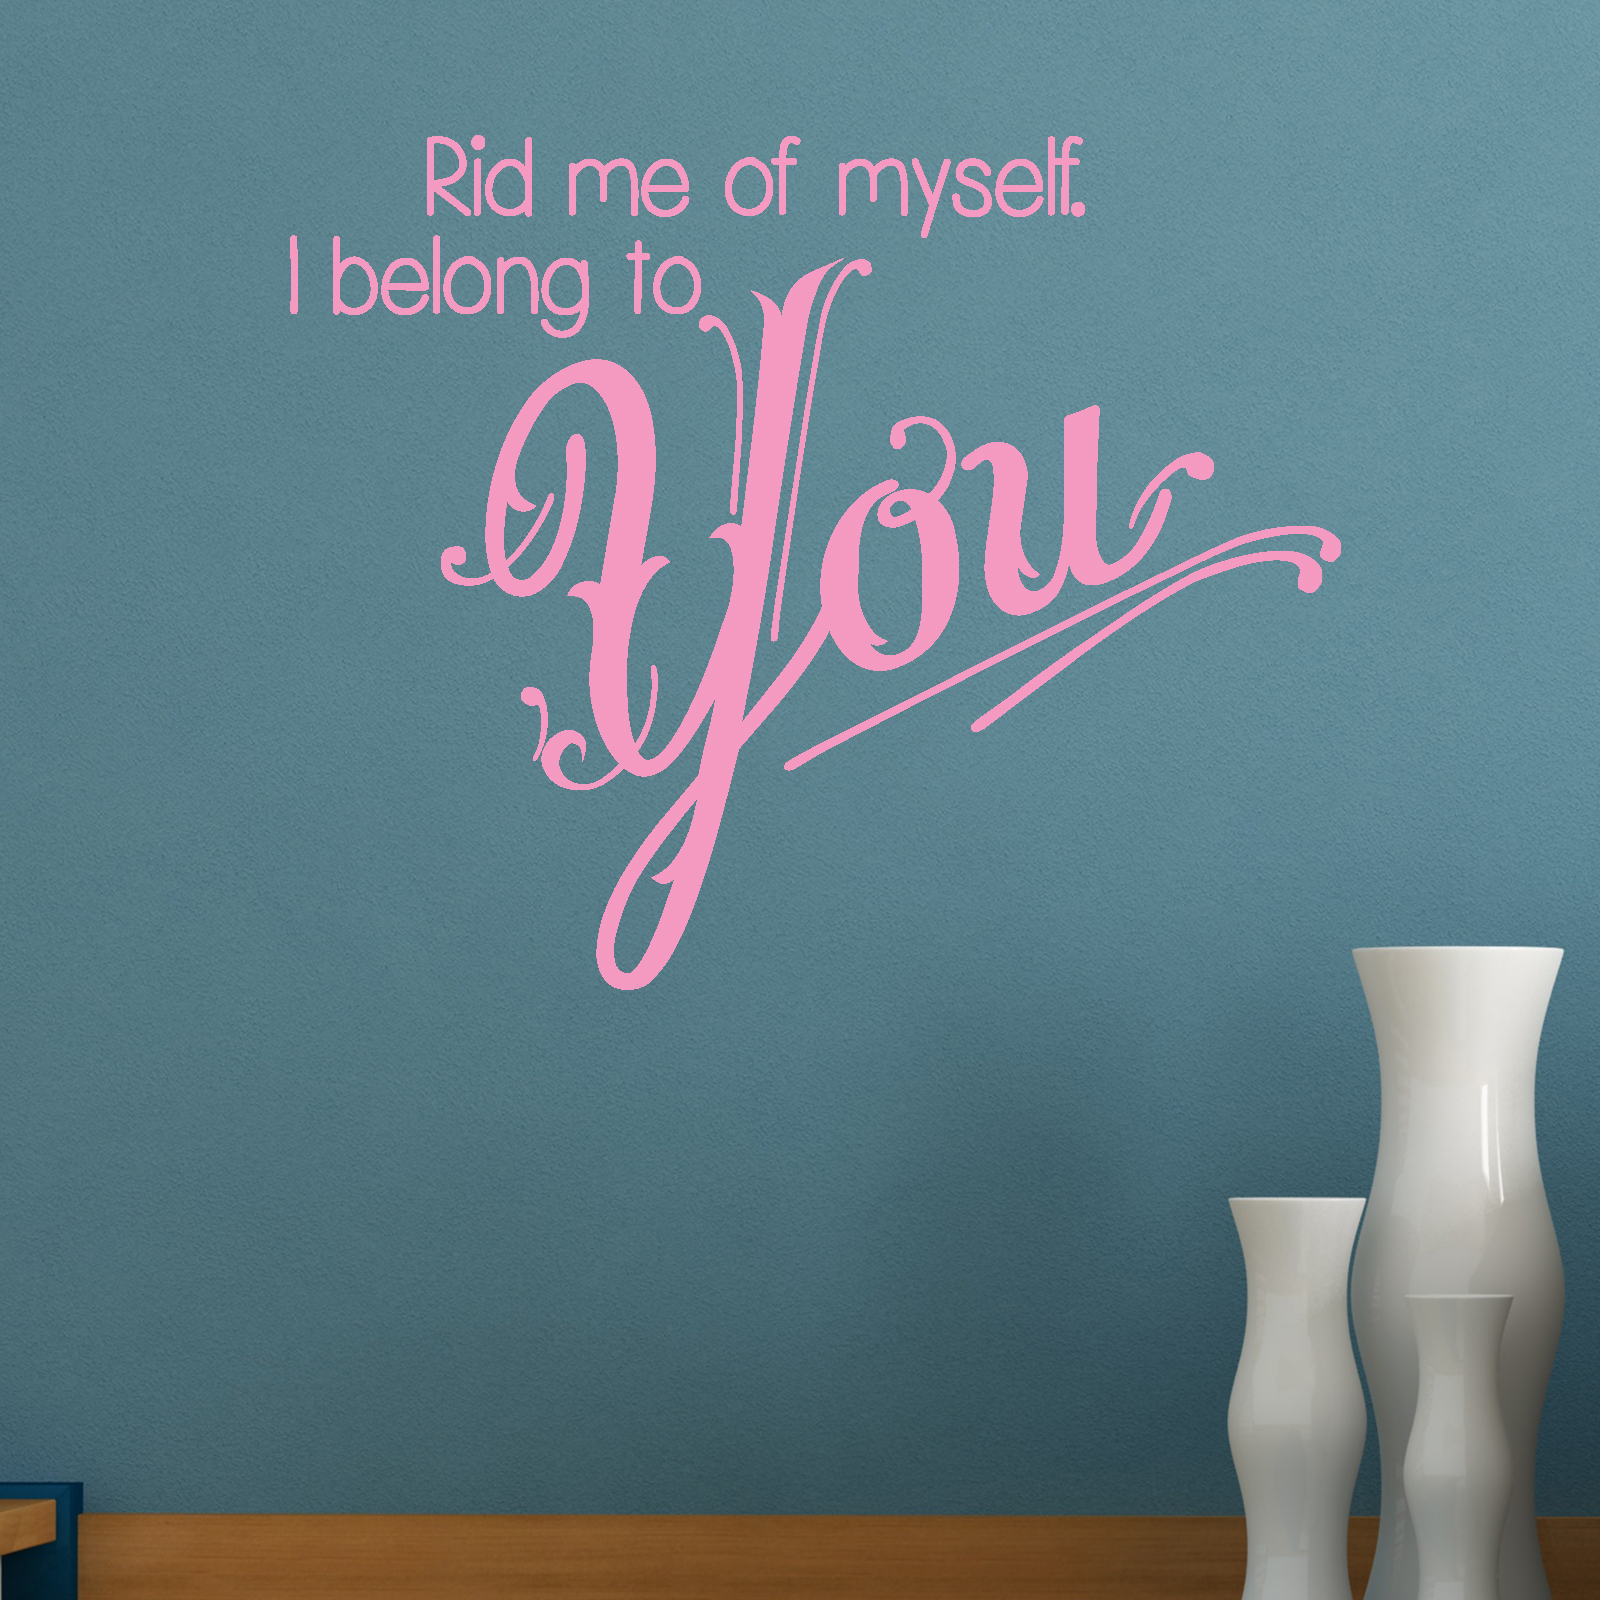 I Belong To You Quotes. QuotesGram